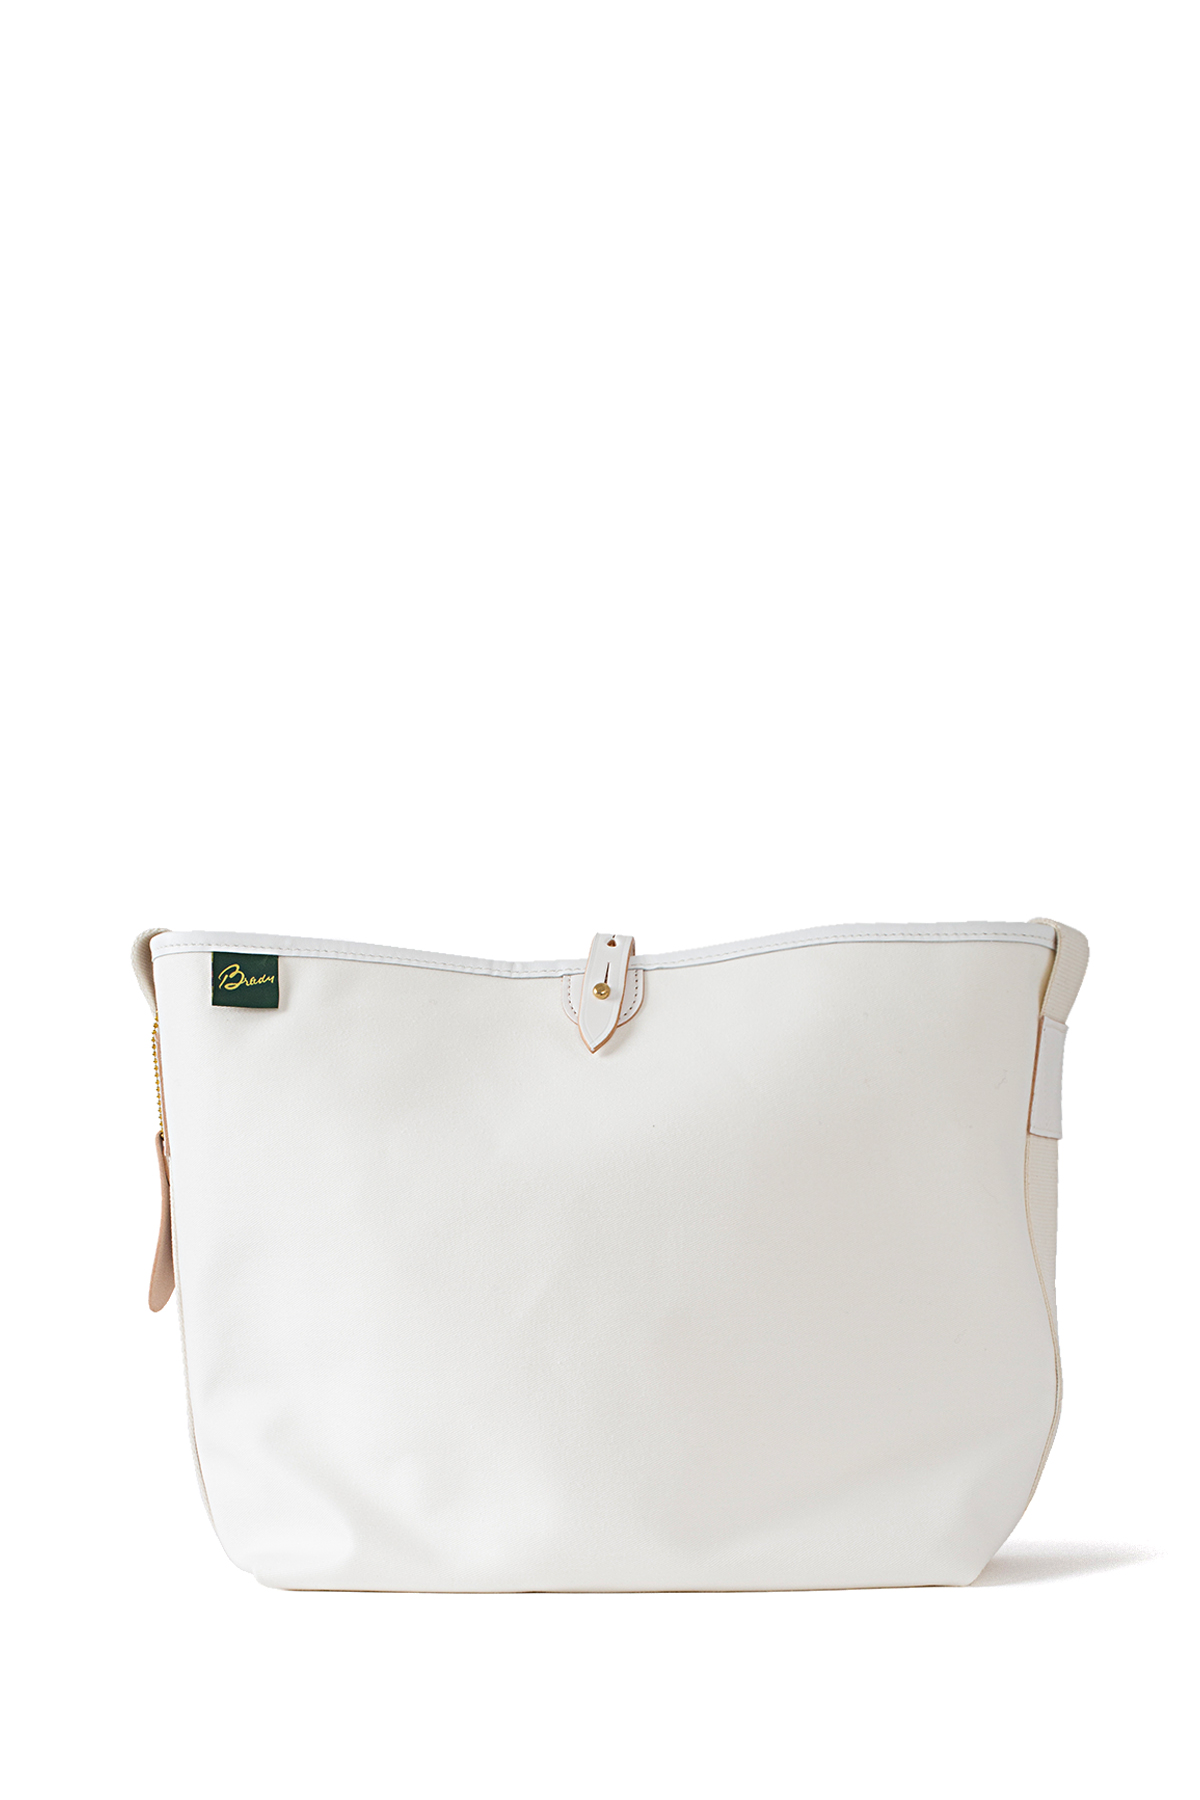 Brady Bags : Kinross Bag (White)